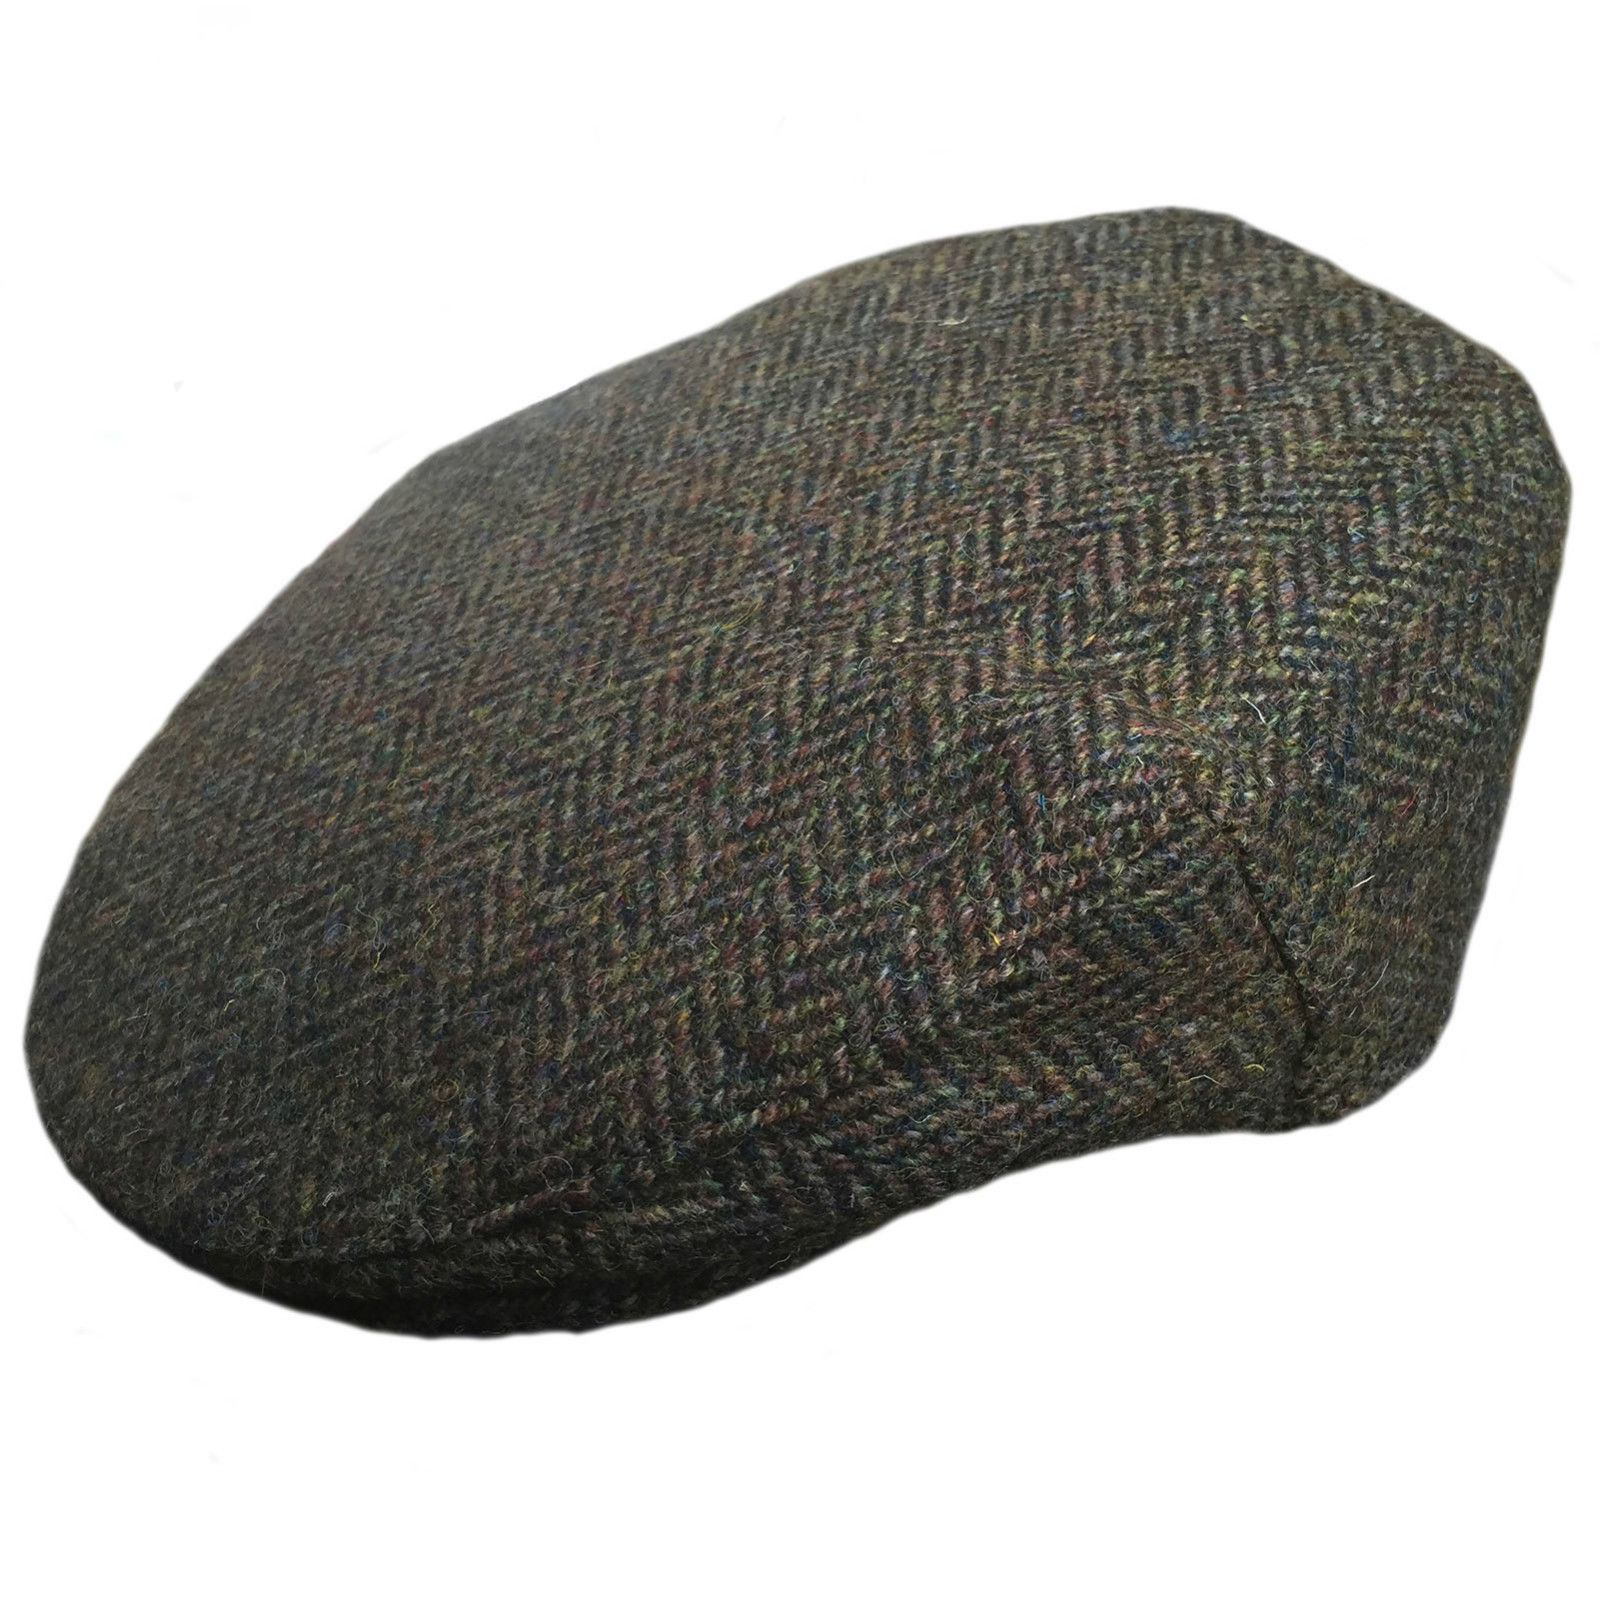 e173e83124f Details about Failsworth Stornoway Brown Green Harris Tweed Peaky Blinders  Style Flat Cap Hat